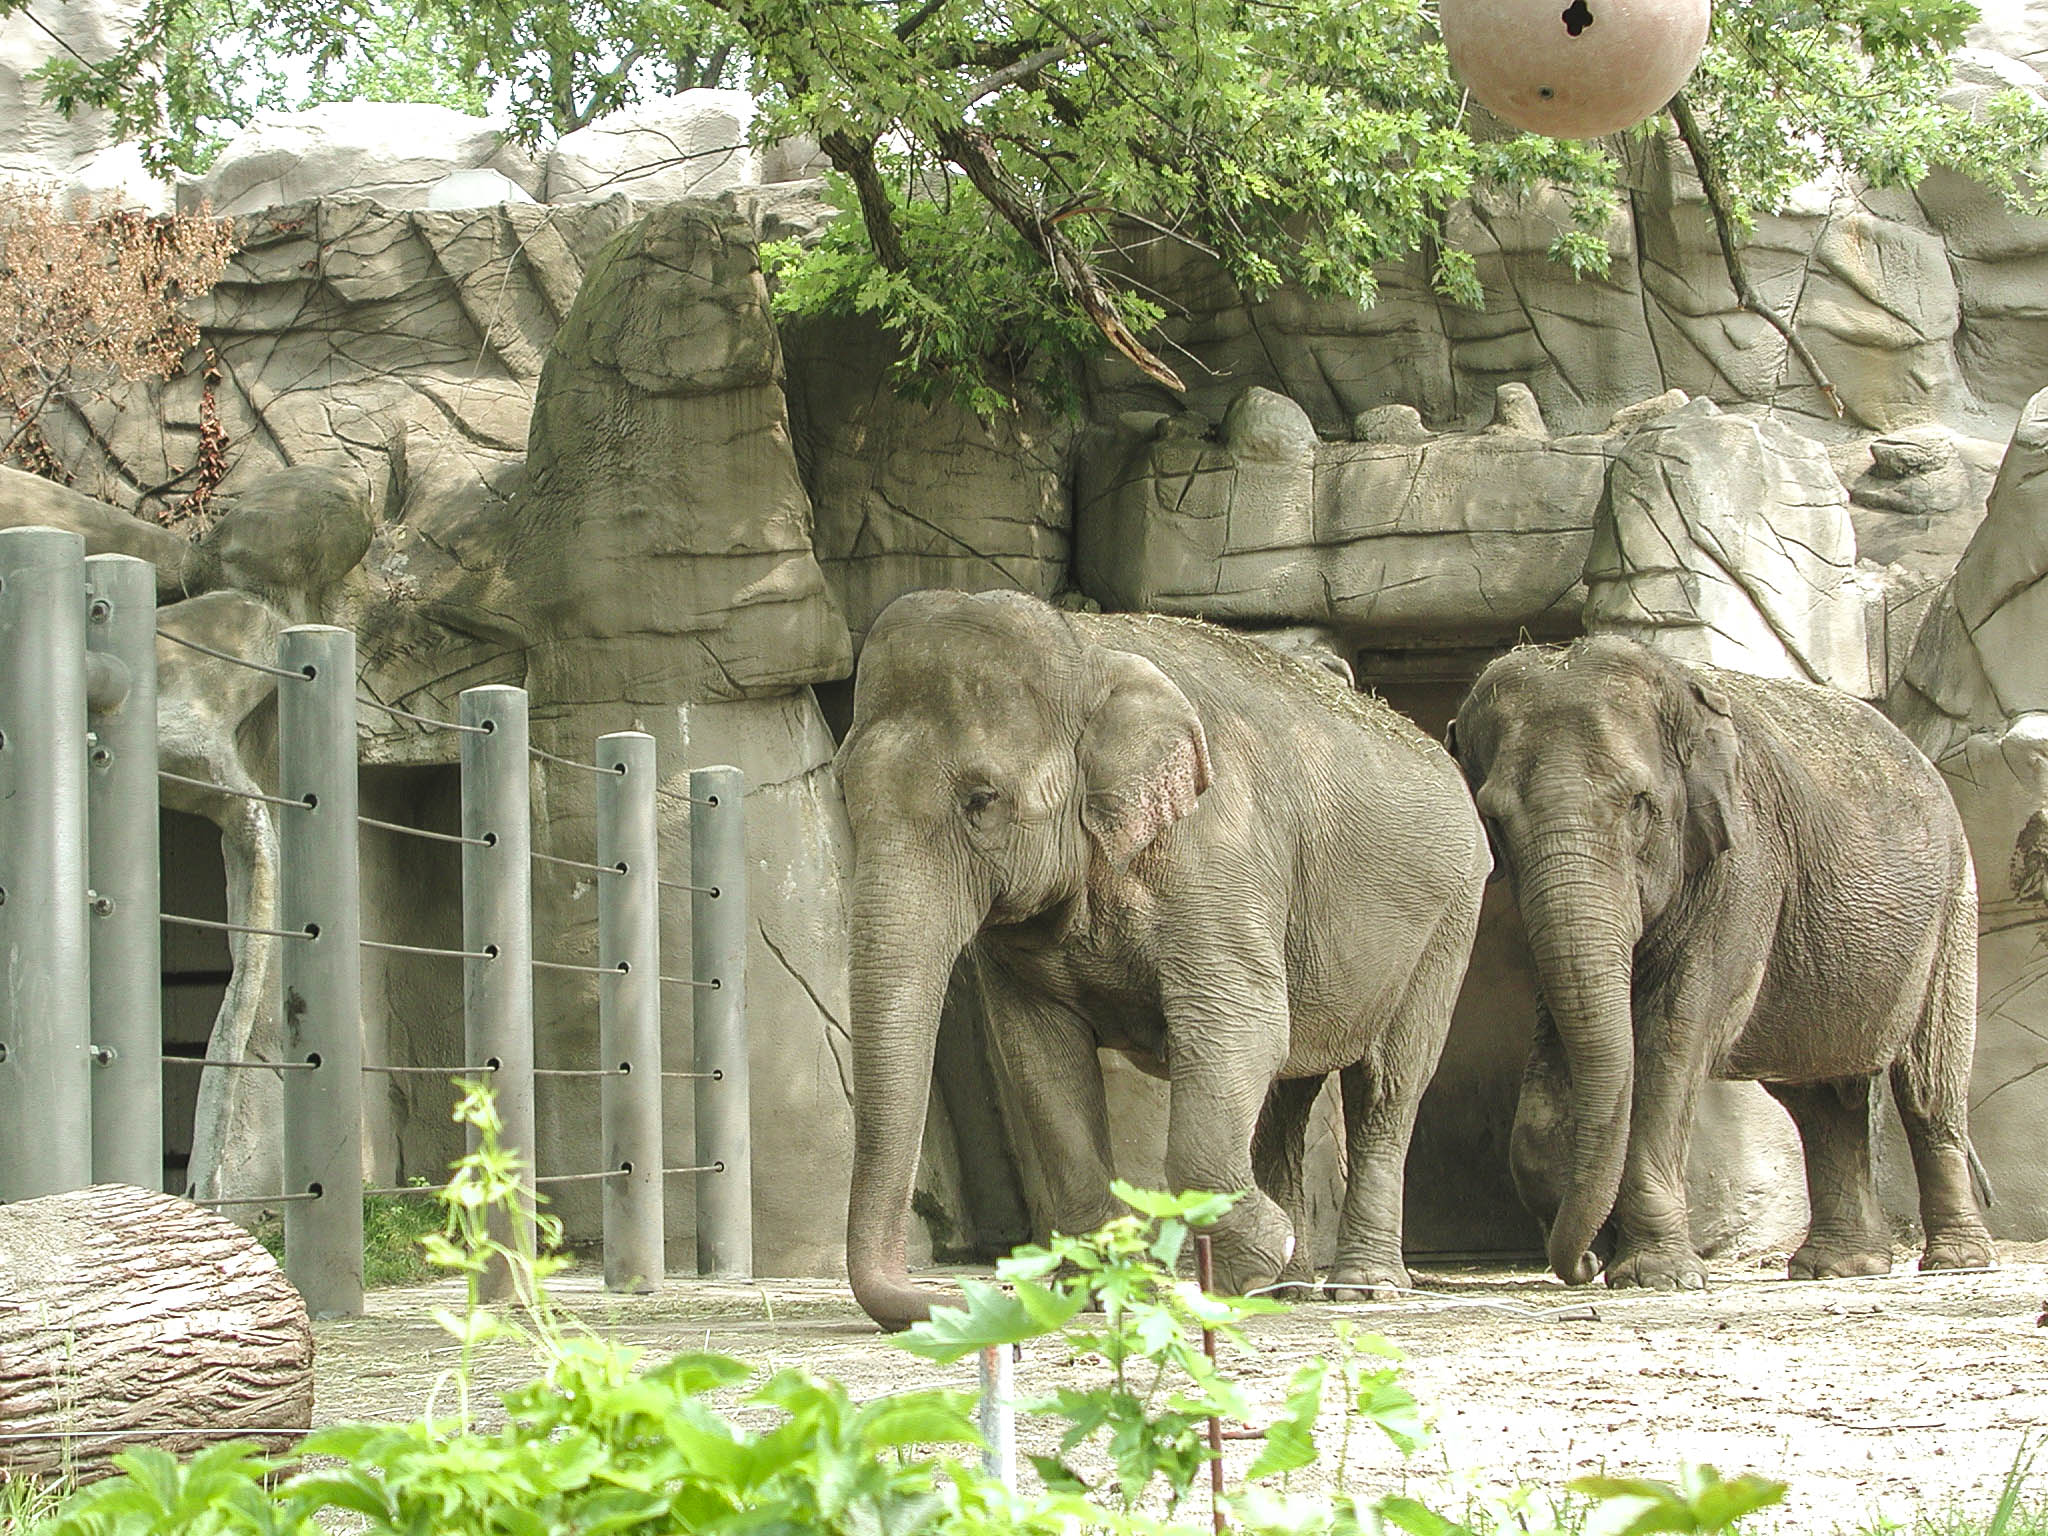 Elephants at Detroit Zoo